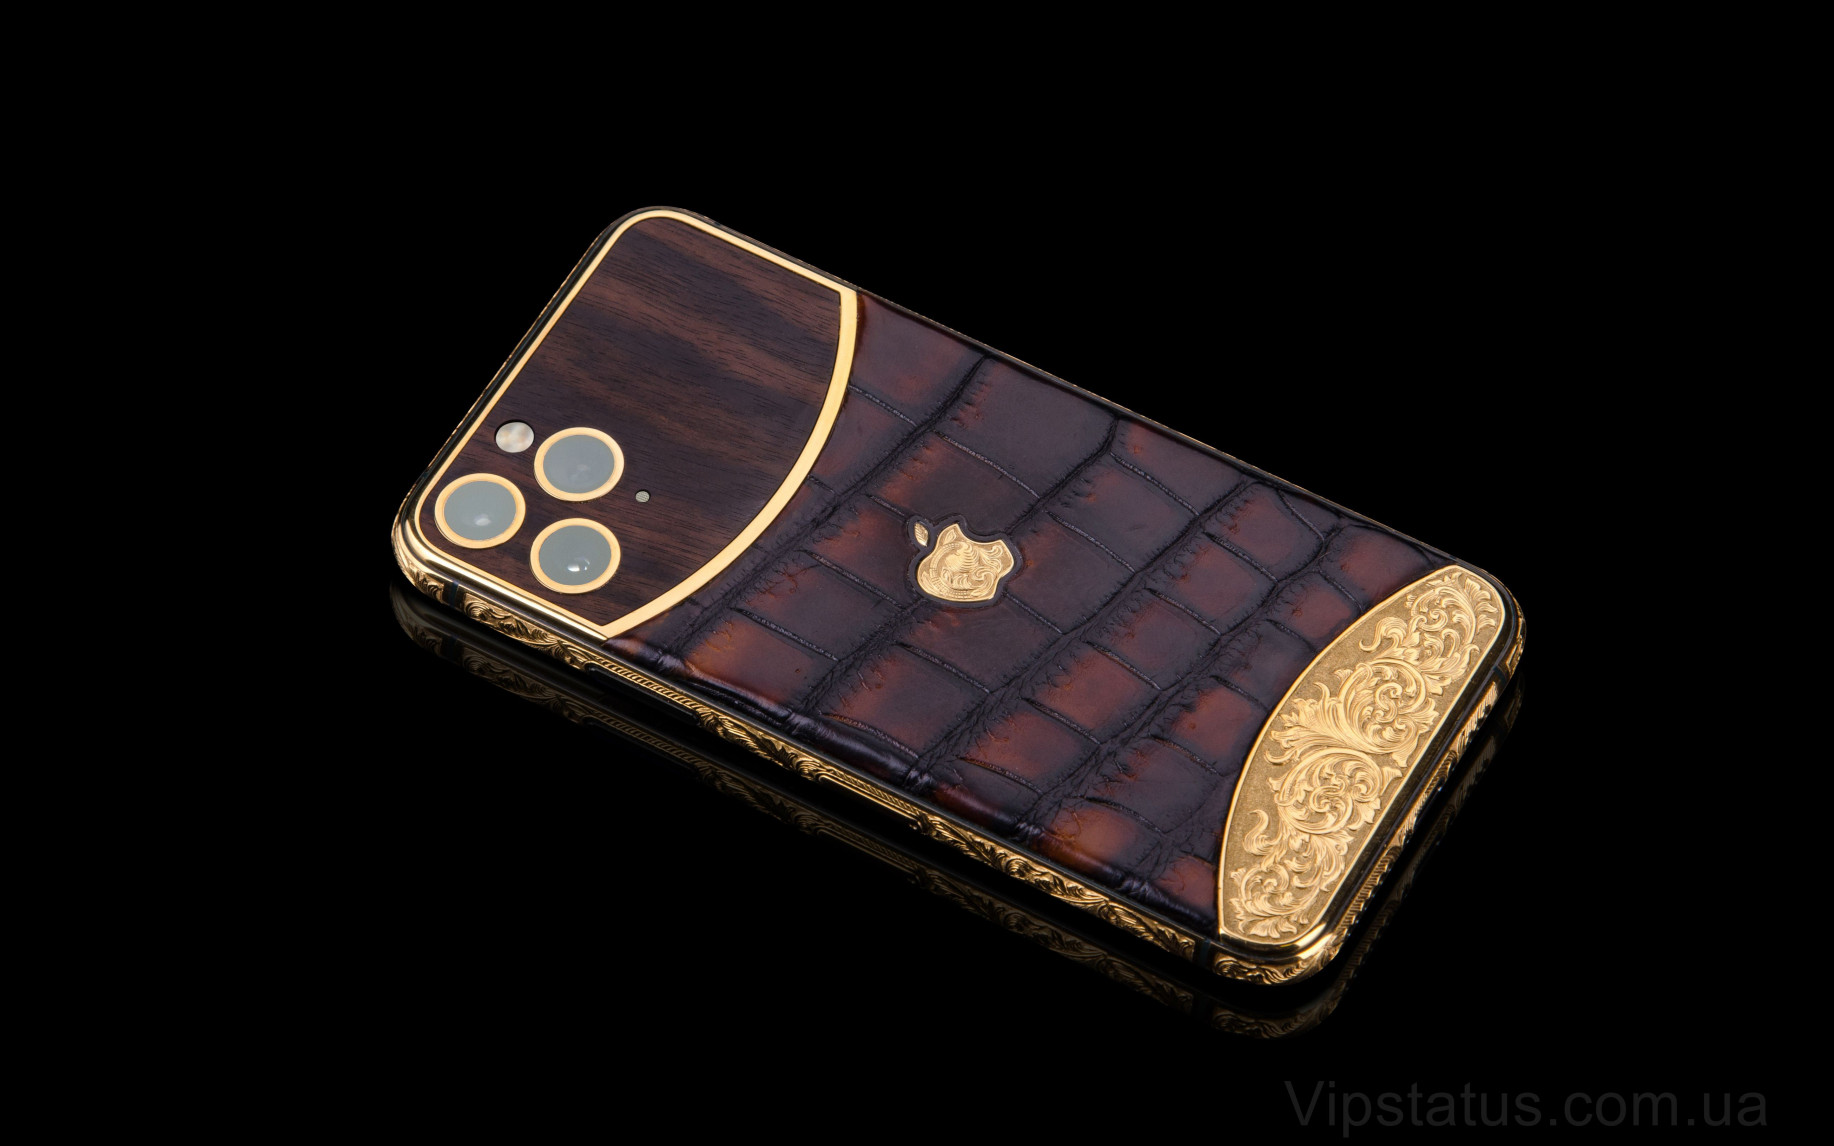 Elite Brown Edition IPHONE XS 512 GB Brown Edition IPHONE XS 512 GB image 3